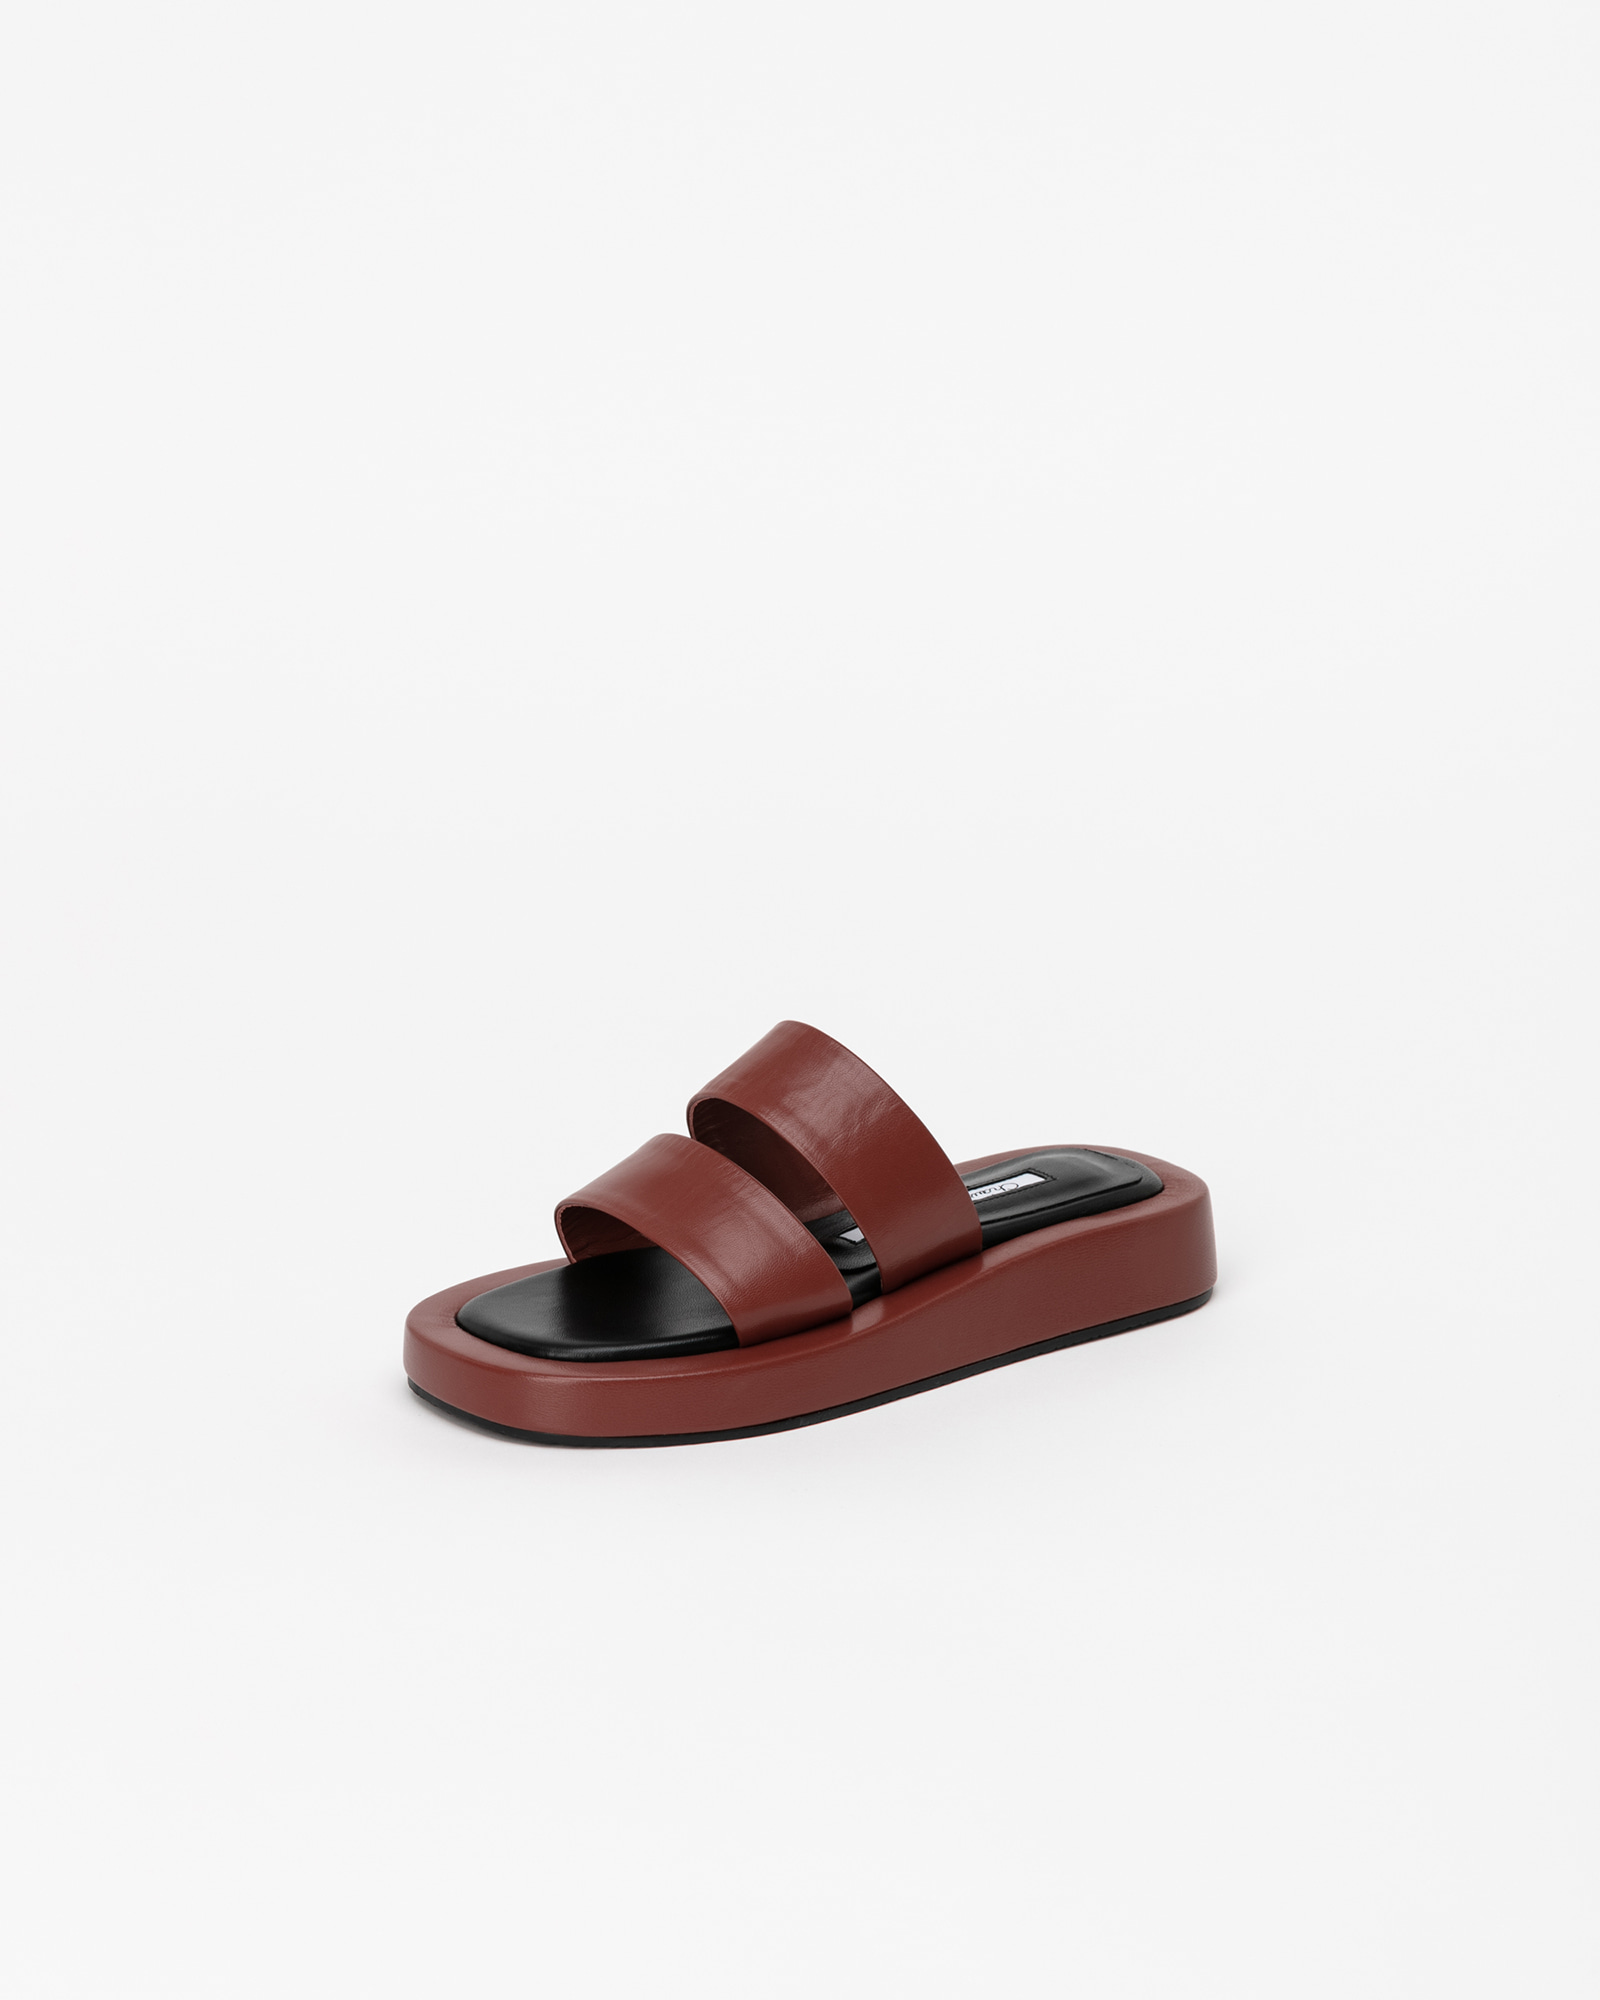 Avignon Footbed Thong Slides in Ruby Brown